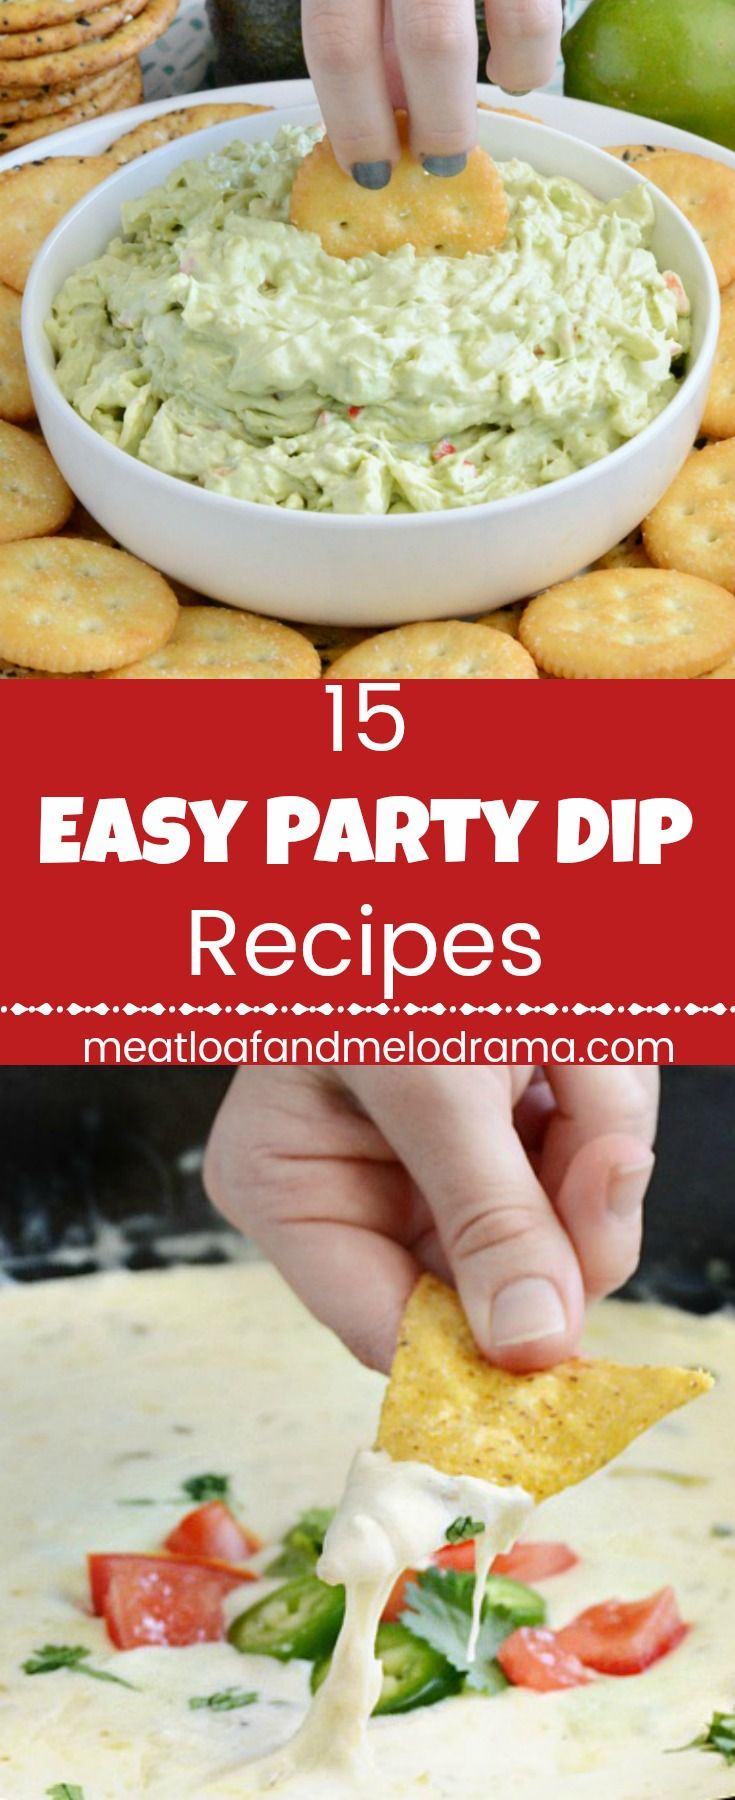 15 Easy Party Dip Recipes - Hot dip and cold dip recipes perfect for parties, game day, holidays, Christmas, Thanksgiving or snacking anytime. Make entertaining easy with these easy appetizers! from Meatloaf and Melodrama